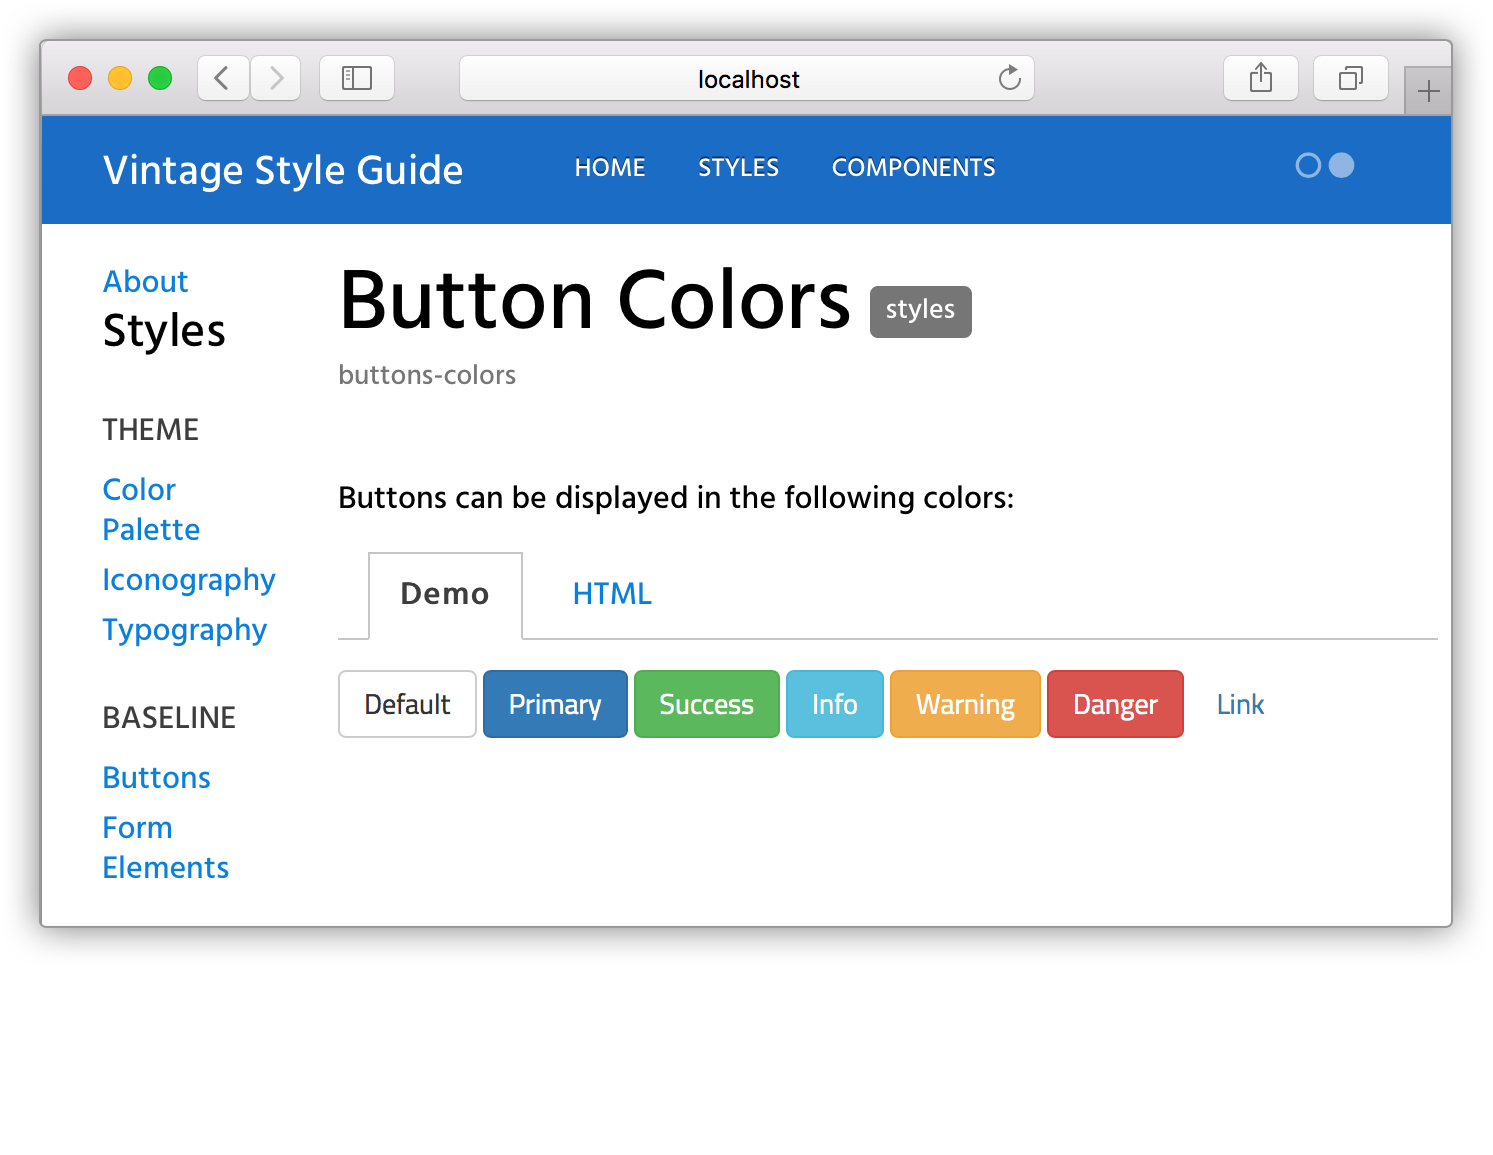 style-guide-buttons-6-buttons.png